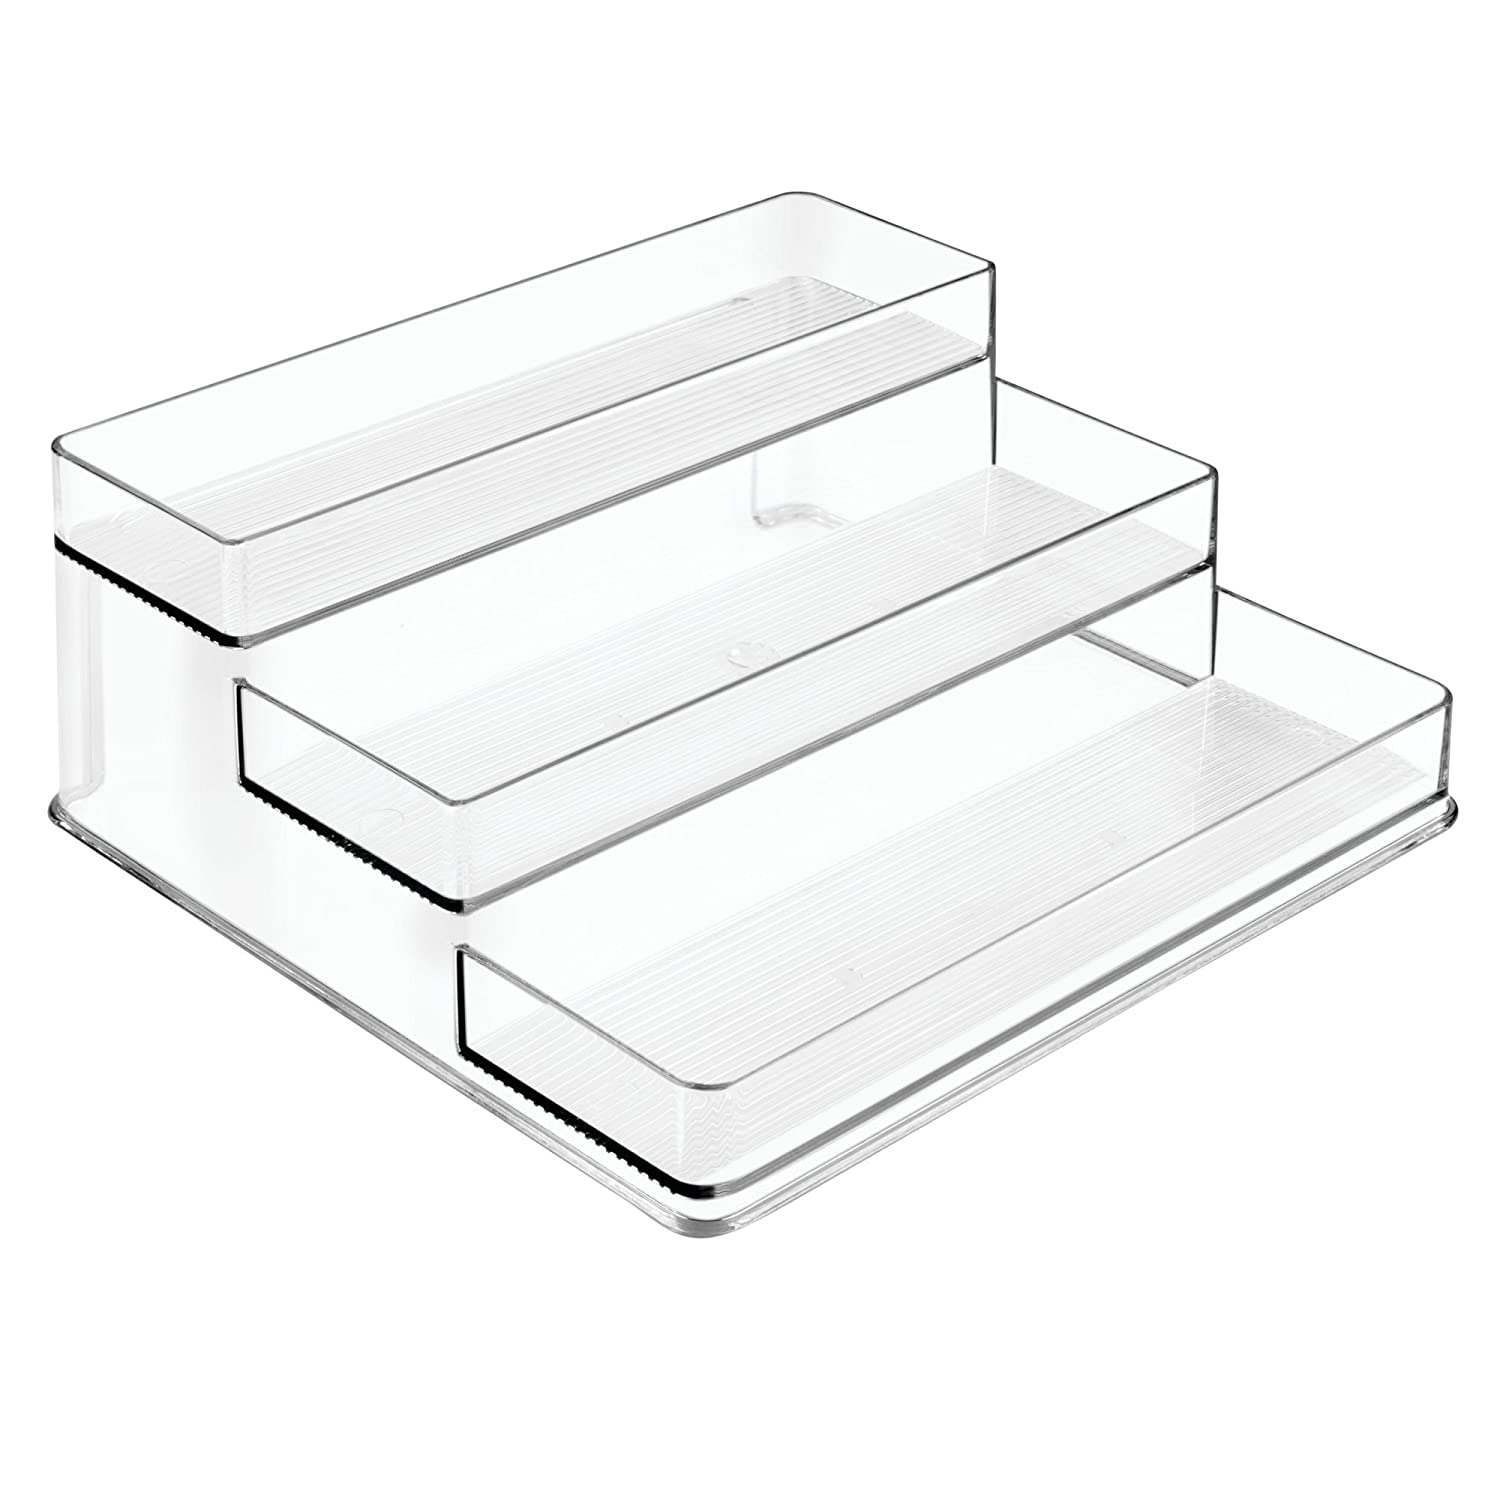 InterDesign Lazy Susan Storage Shelf with Handles for Kitchen Cabinets, Pantry, Clear Inc. 62650